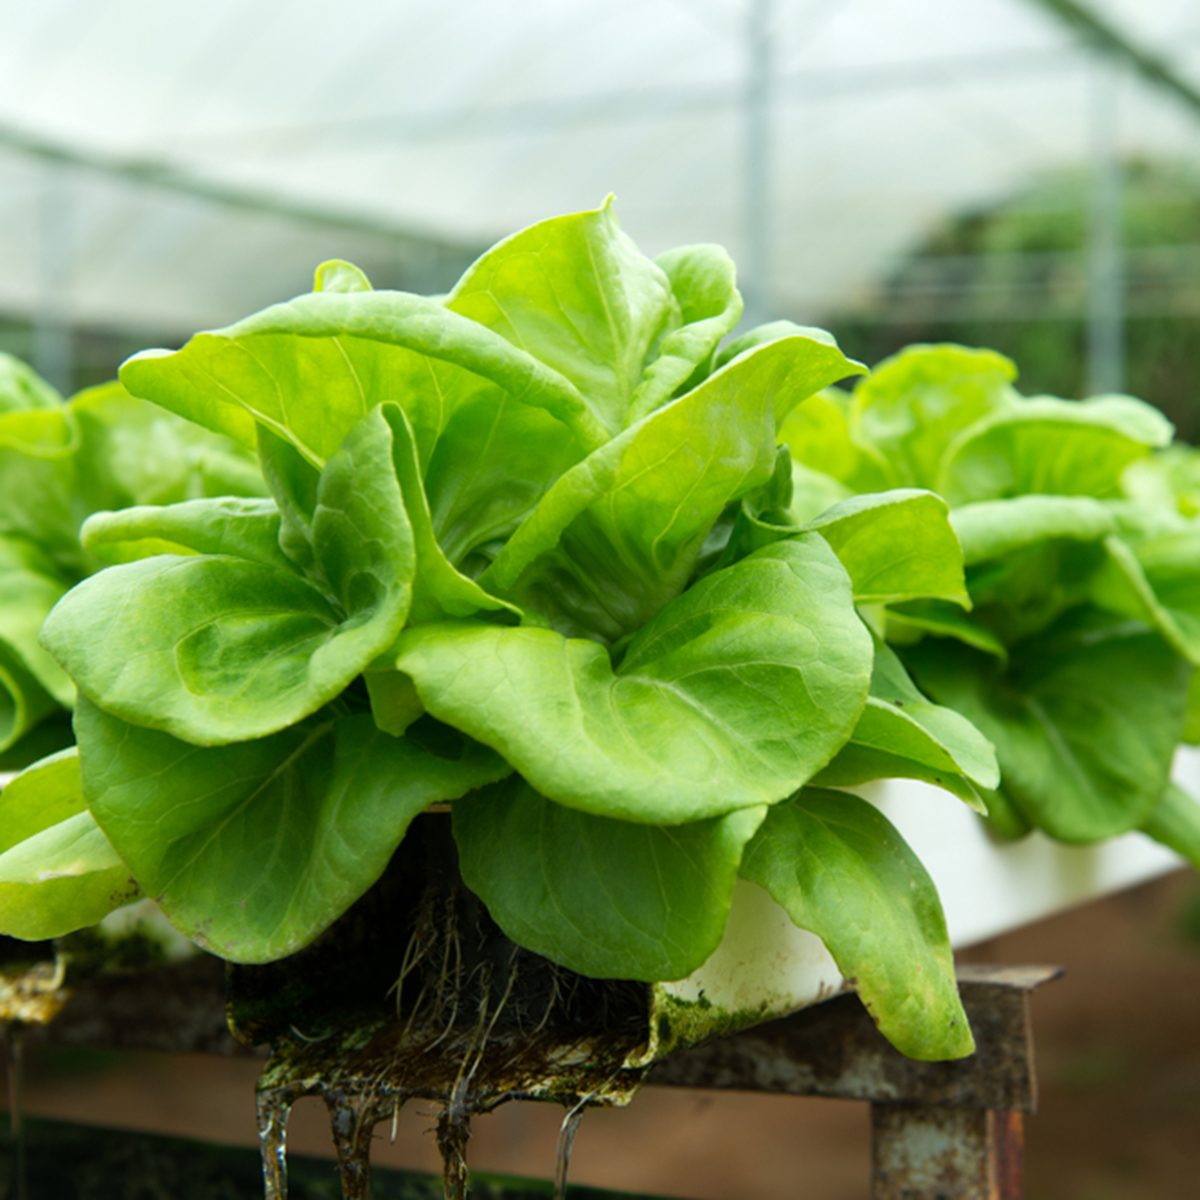 Hydroponic butterhead lettuce growing in a greenhouse